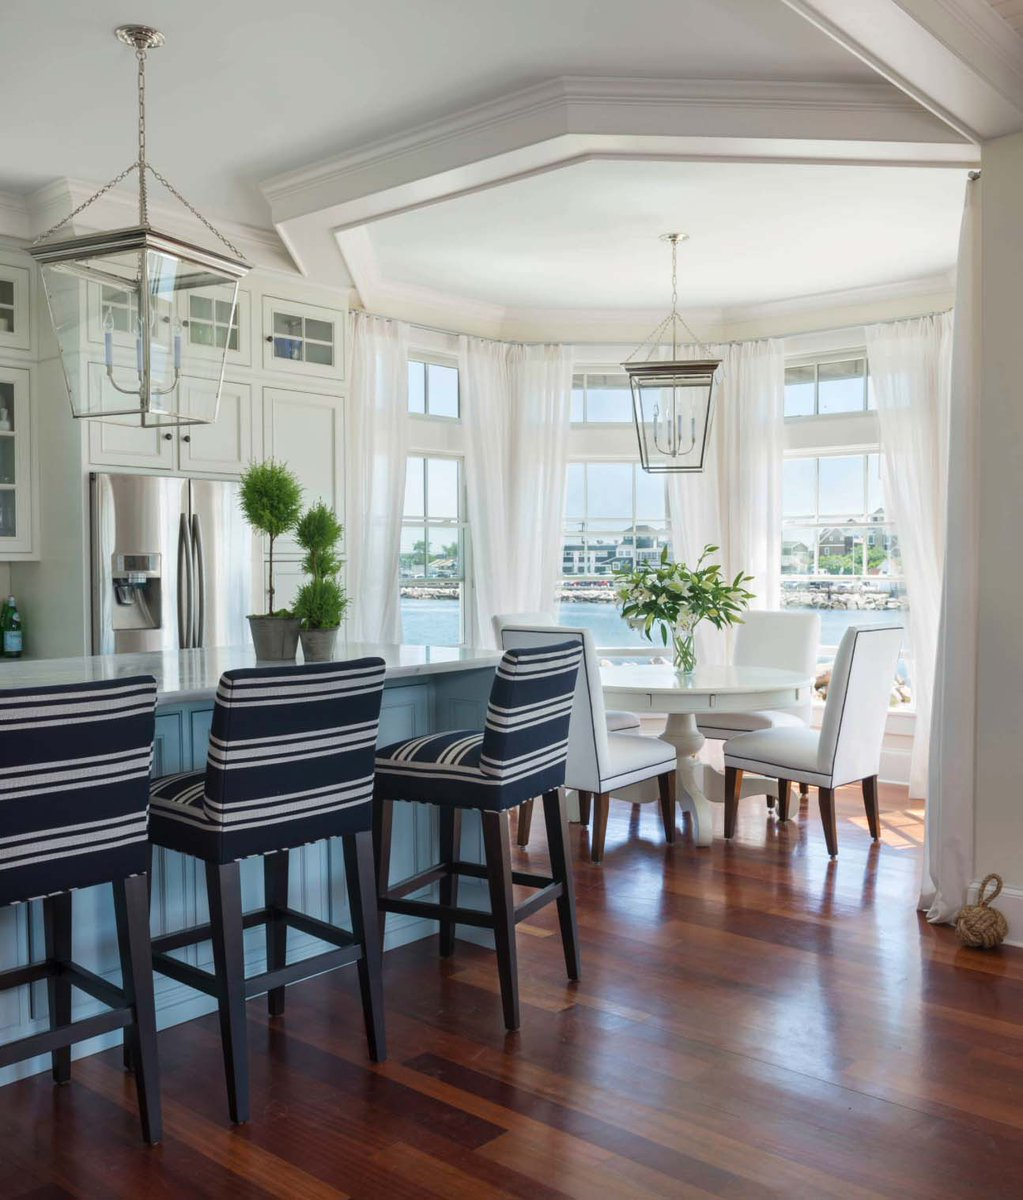 One Kindesign On Twitter A Dreamy New England Beach House With Seaside Views Https T Co Awwbkka58x